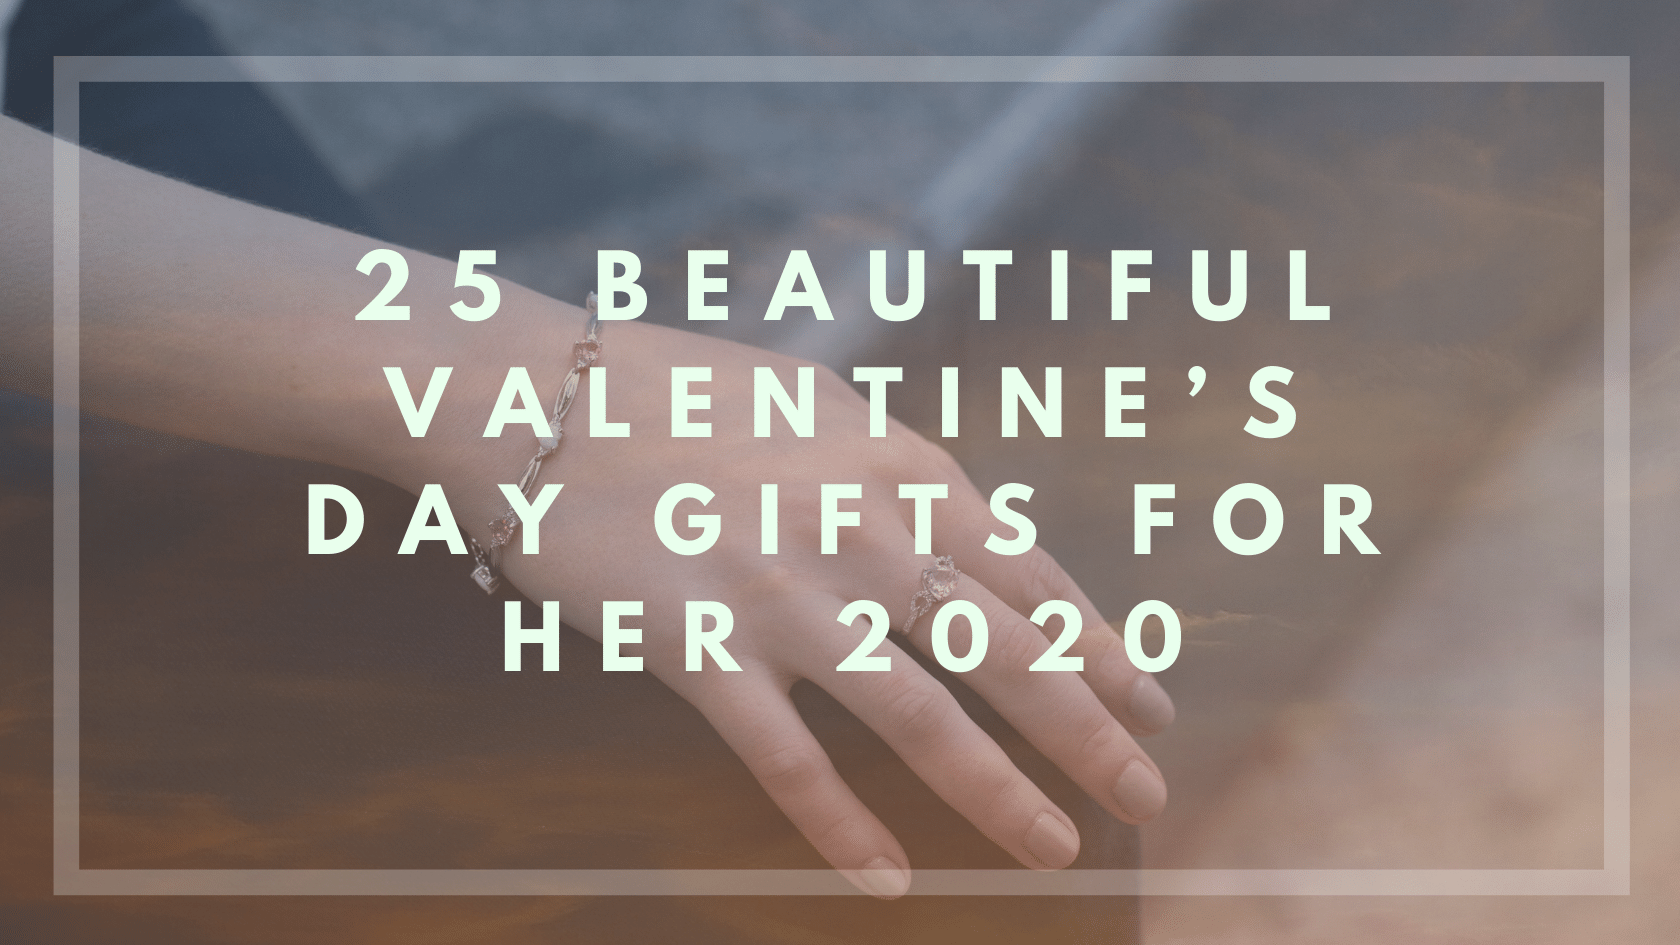 25 Beautiful Valentine's Day Gifts For Her 2020